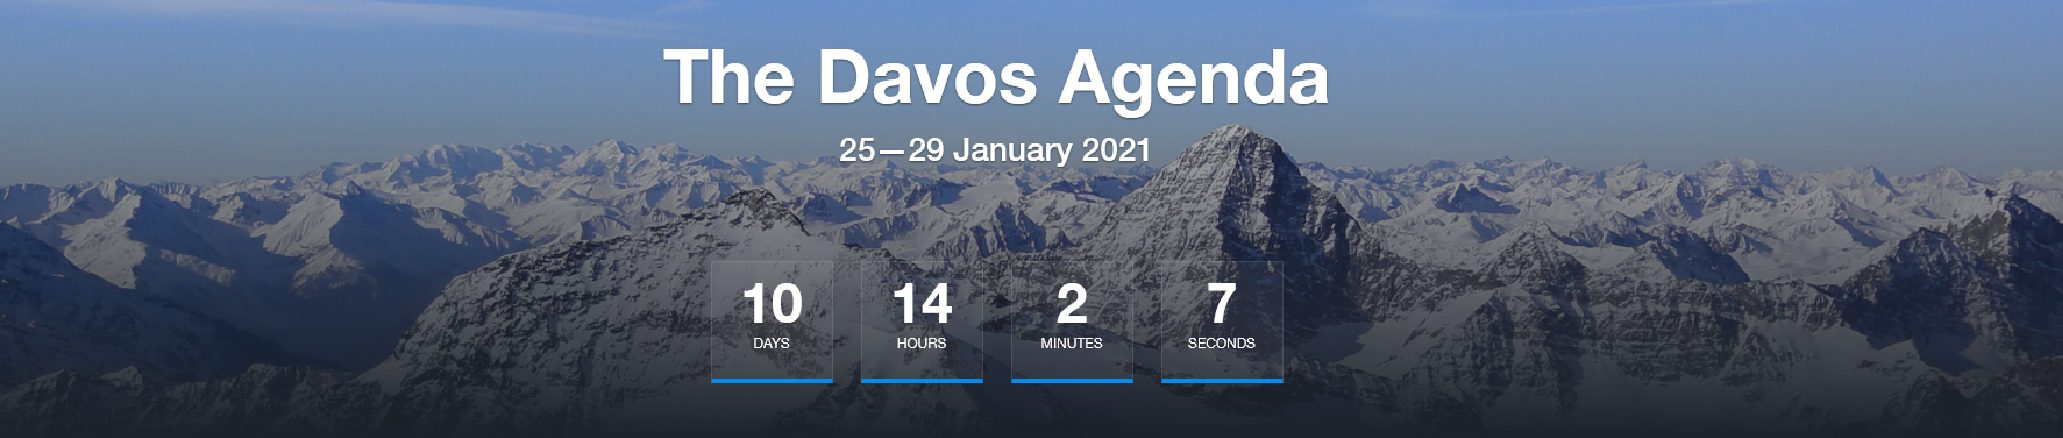 World-Economic-Forum DAVOS 2021